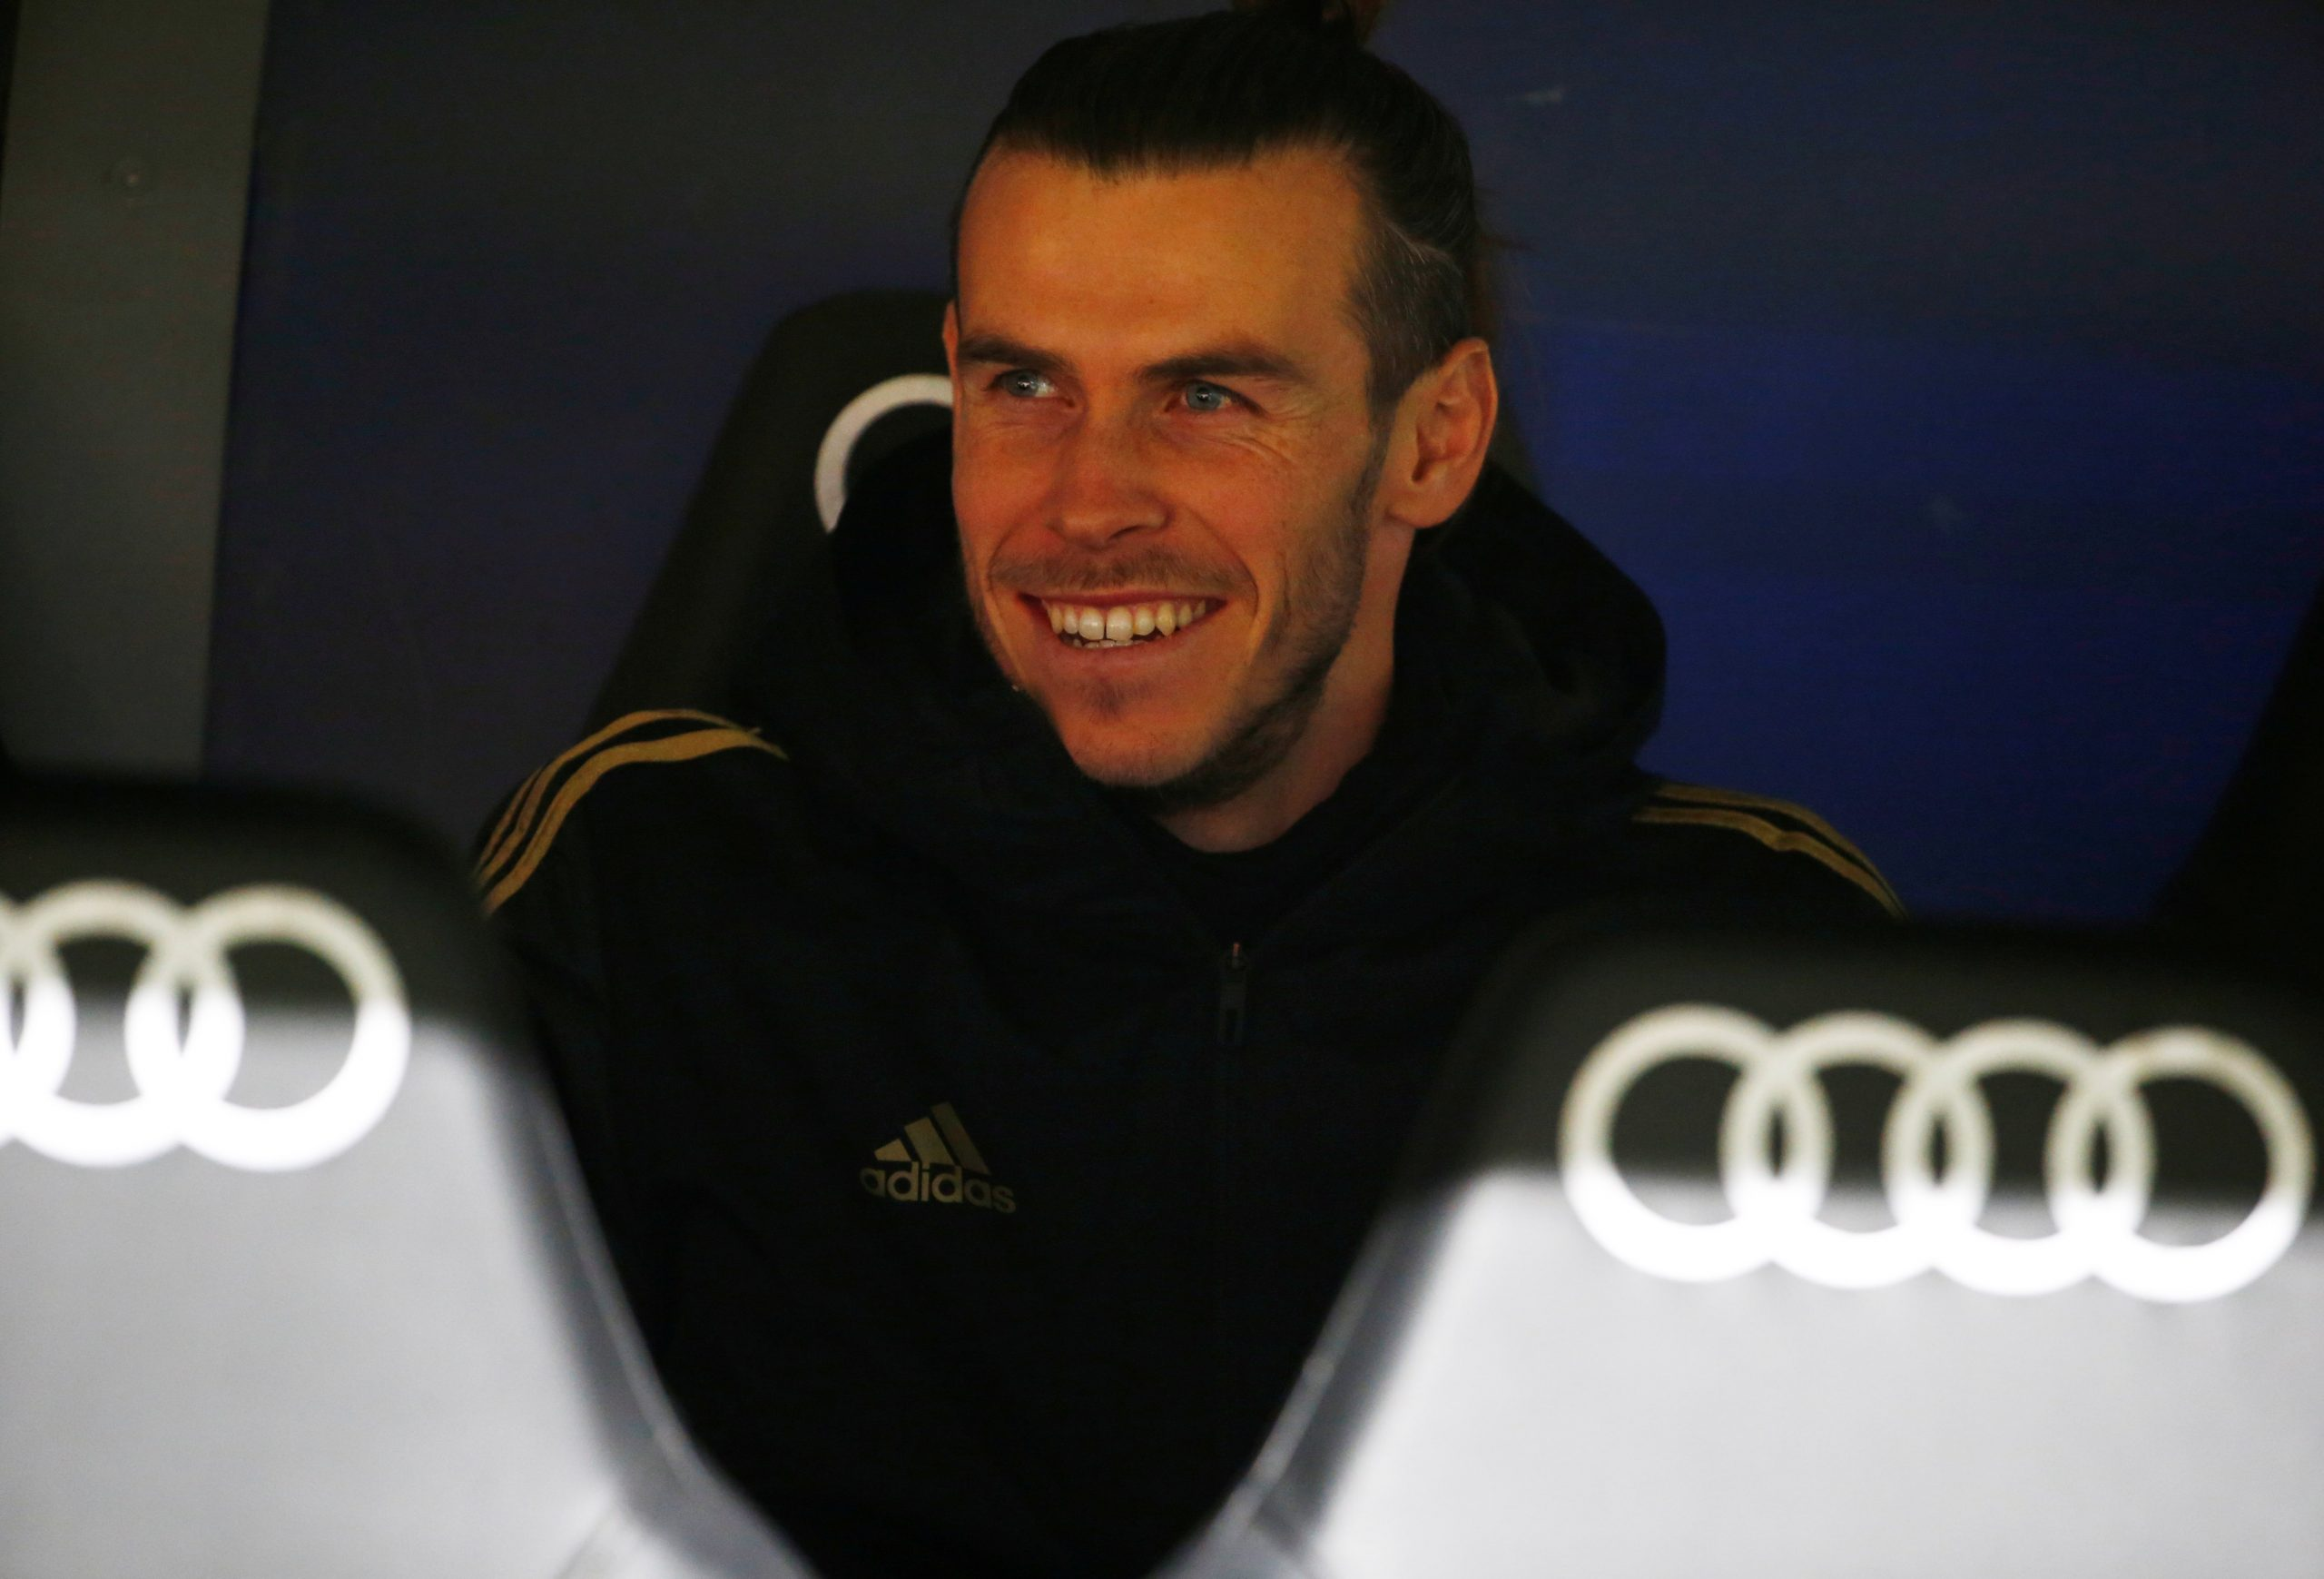 Bale's agent hits out at 'experts' and their 'opinions'